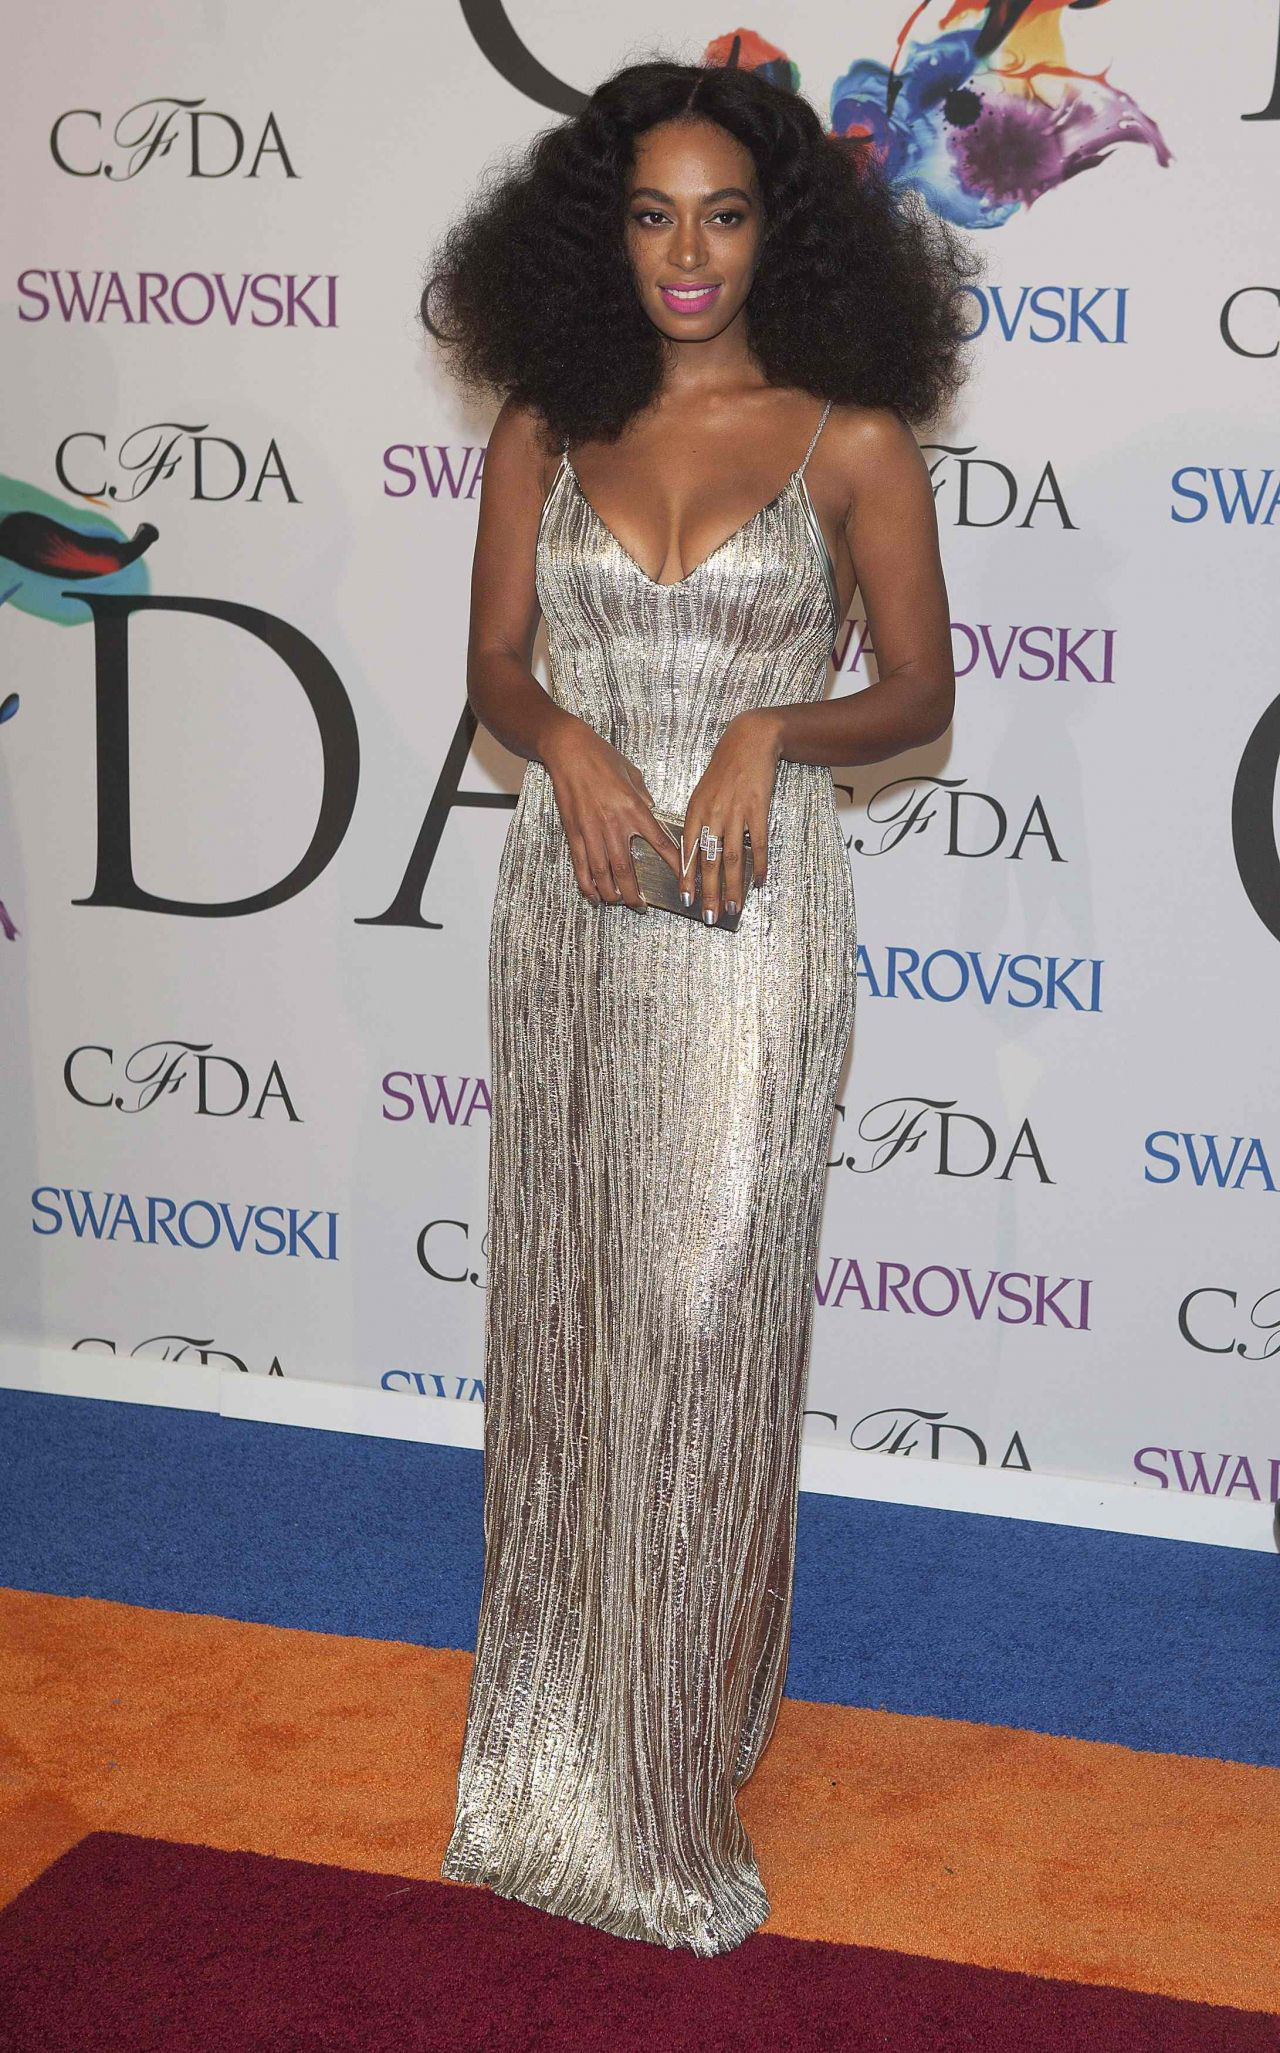 http://celebmafia.com/wp-content/uploads/2014/06/solange-knowles-2014-cfda-fashion-awards_3.jpg